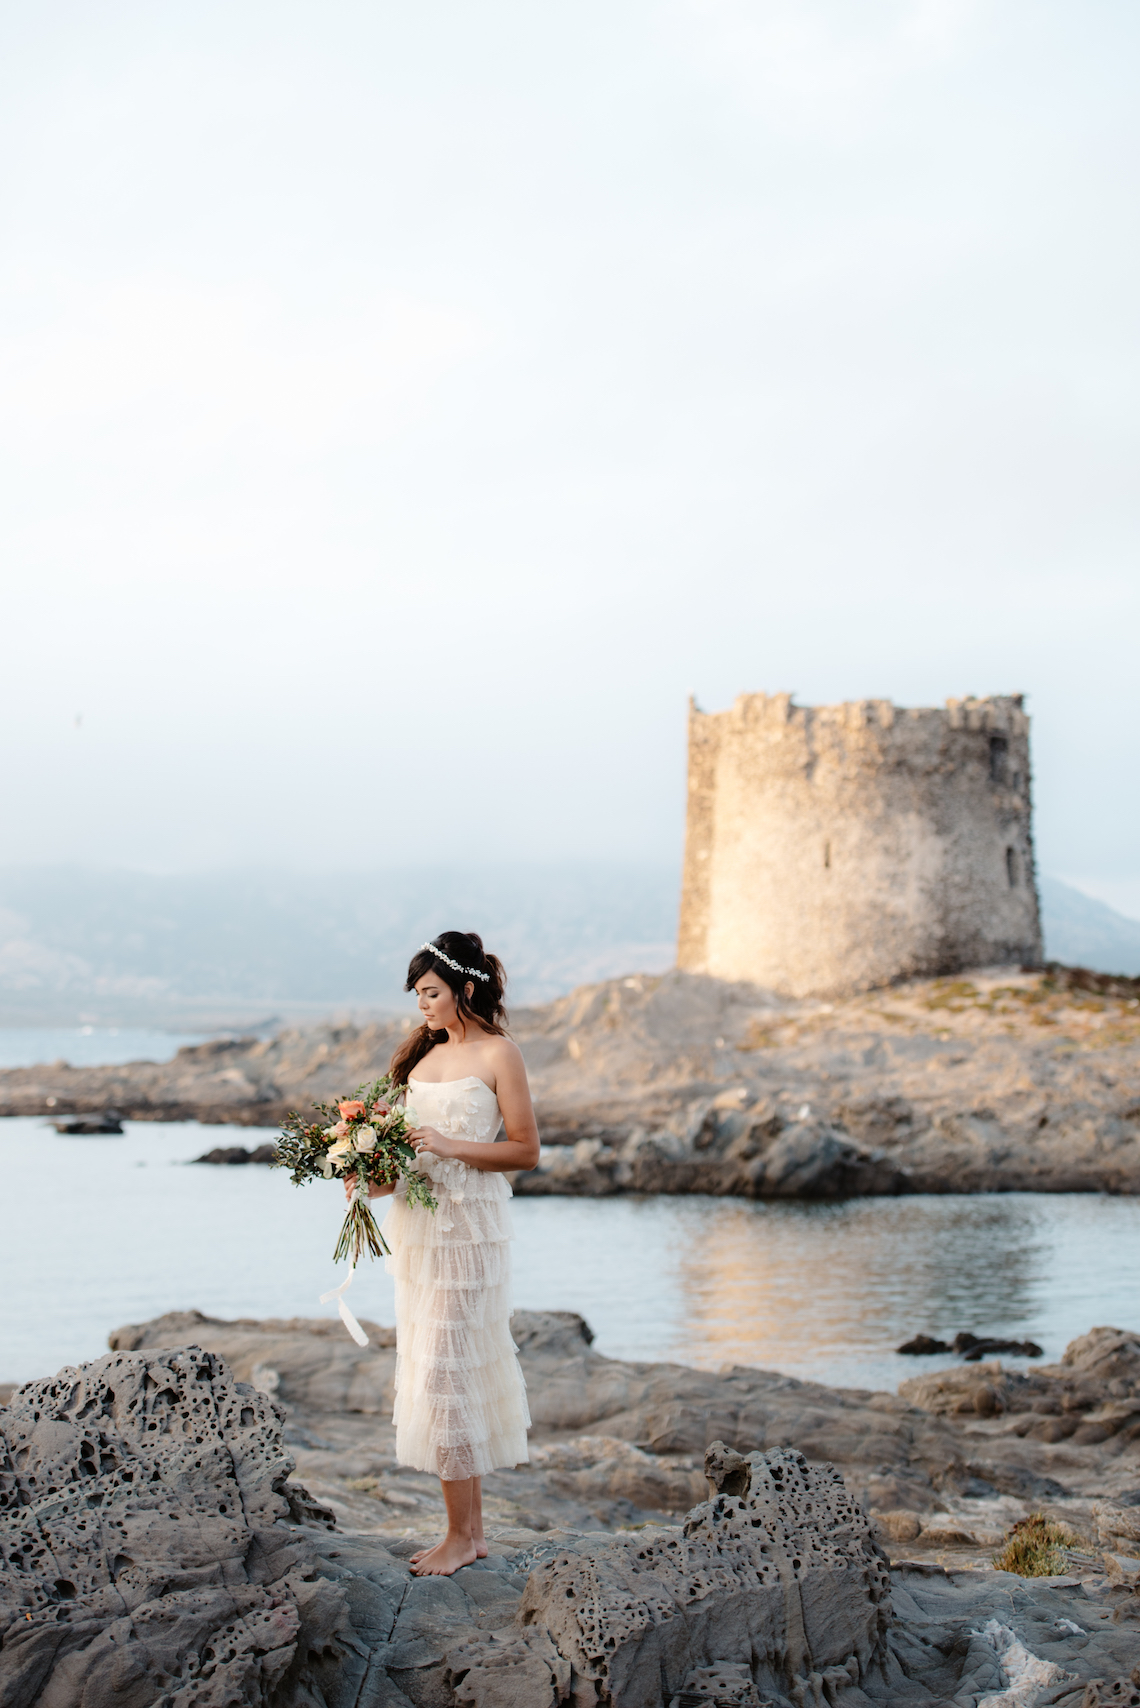 Shipwrecked; Seaside Elopement Inspiration From Sardinia | Valeria Mameli 25